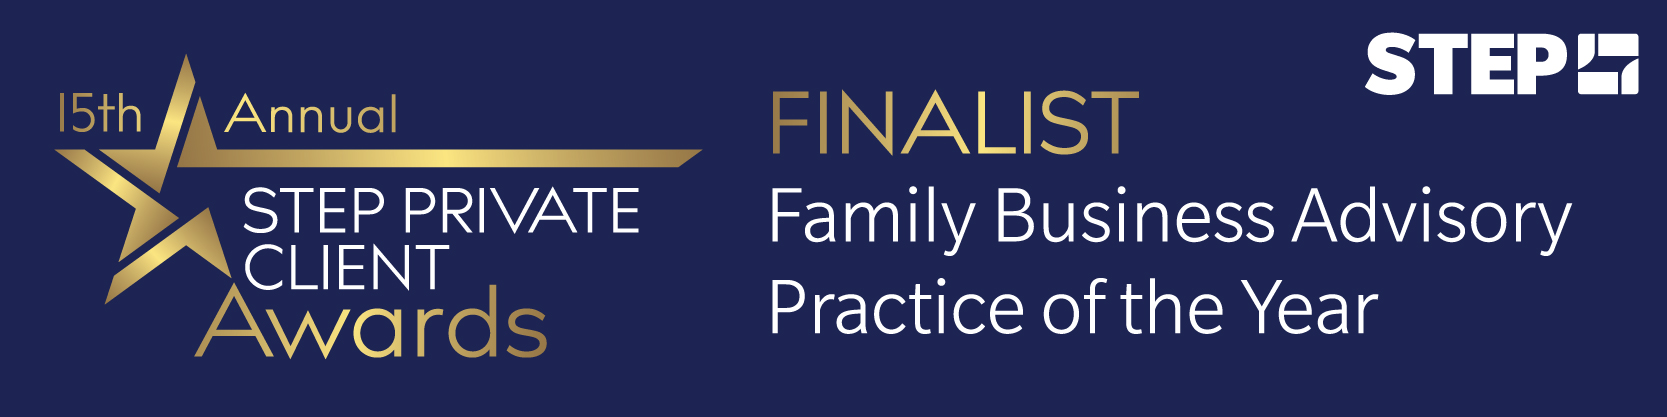 Forsters shortlisted for Family Business Advisory Practice of the Year at the STEP Private Client Awards 2020/21